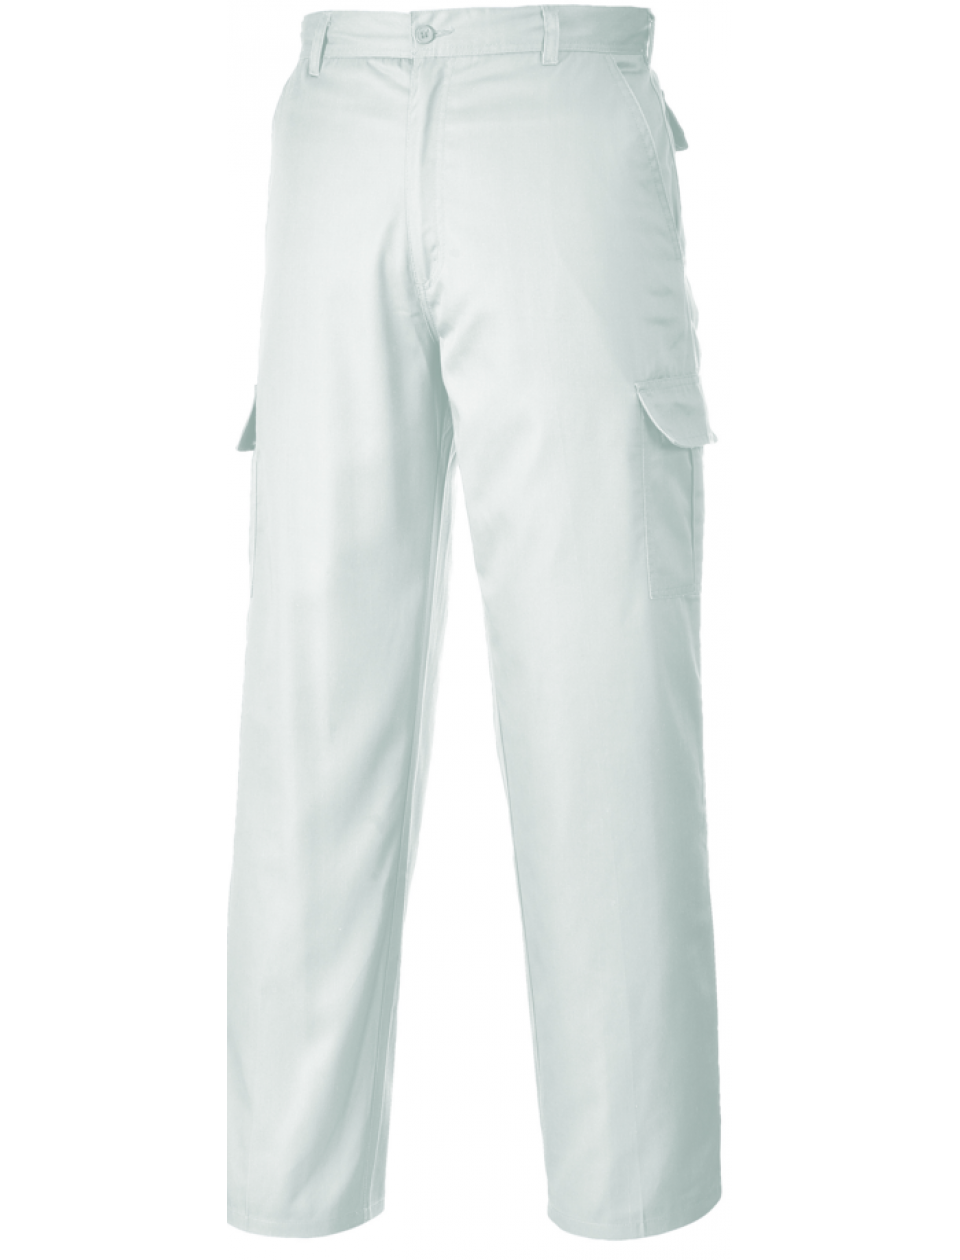 White Trousers. For a lot of people, white trousers are considered far too risky. It definitely takes a certain type of person to be able to wear them successfully, but that doesn't mean it's impossible.